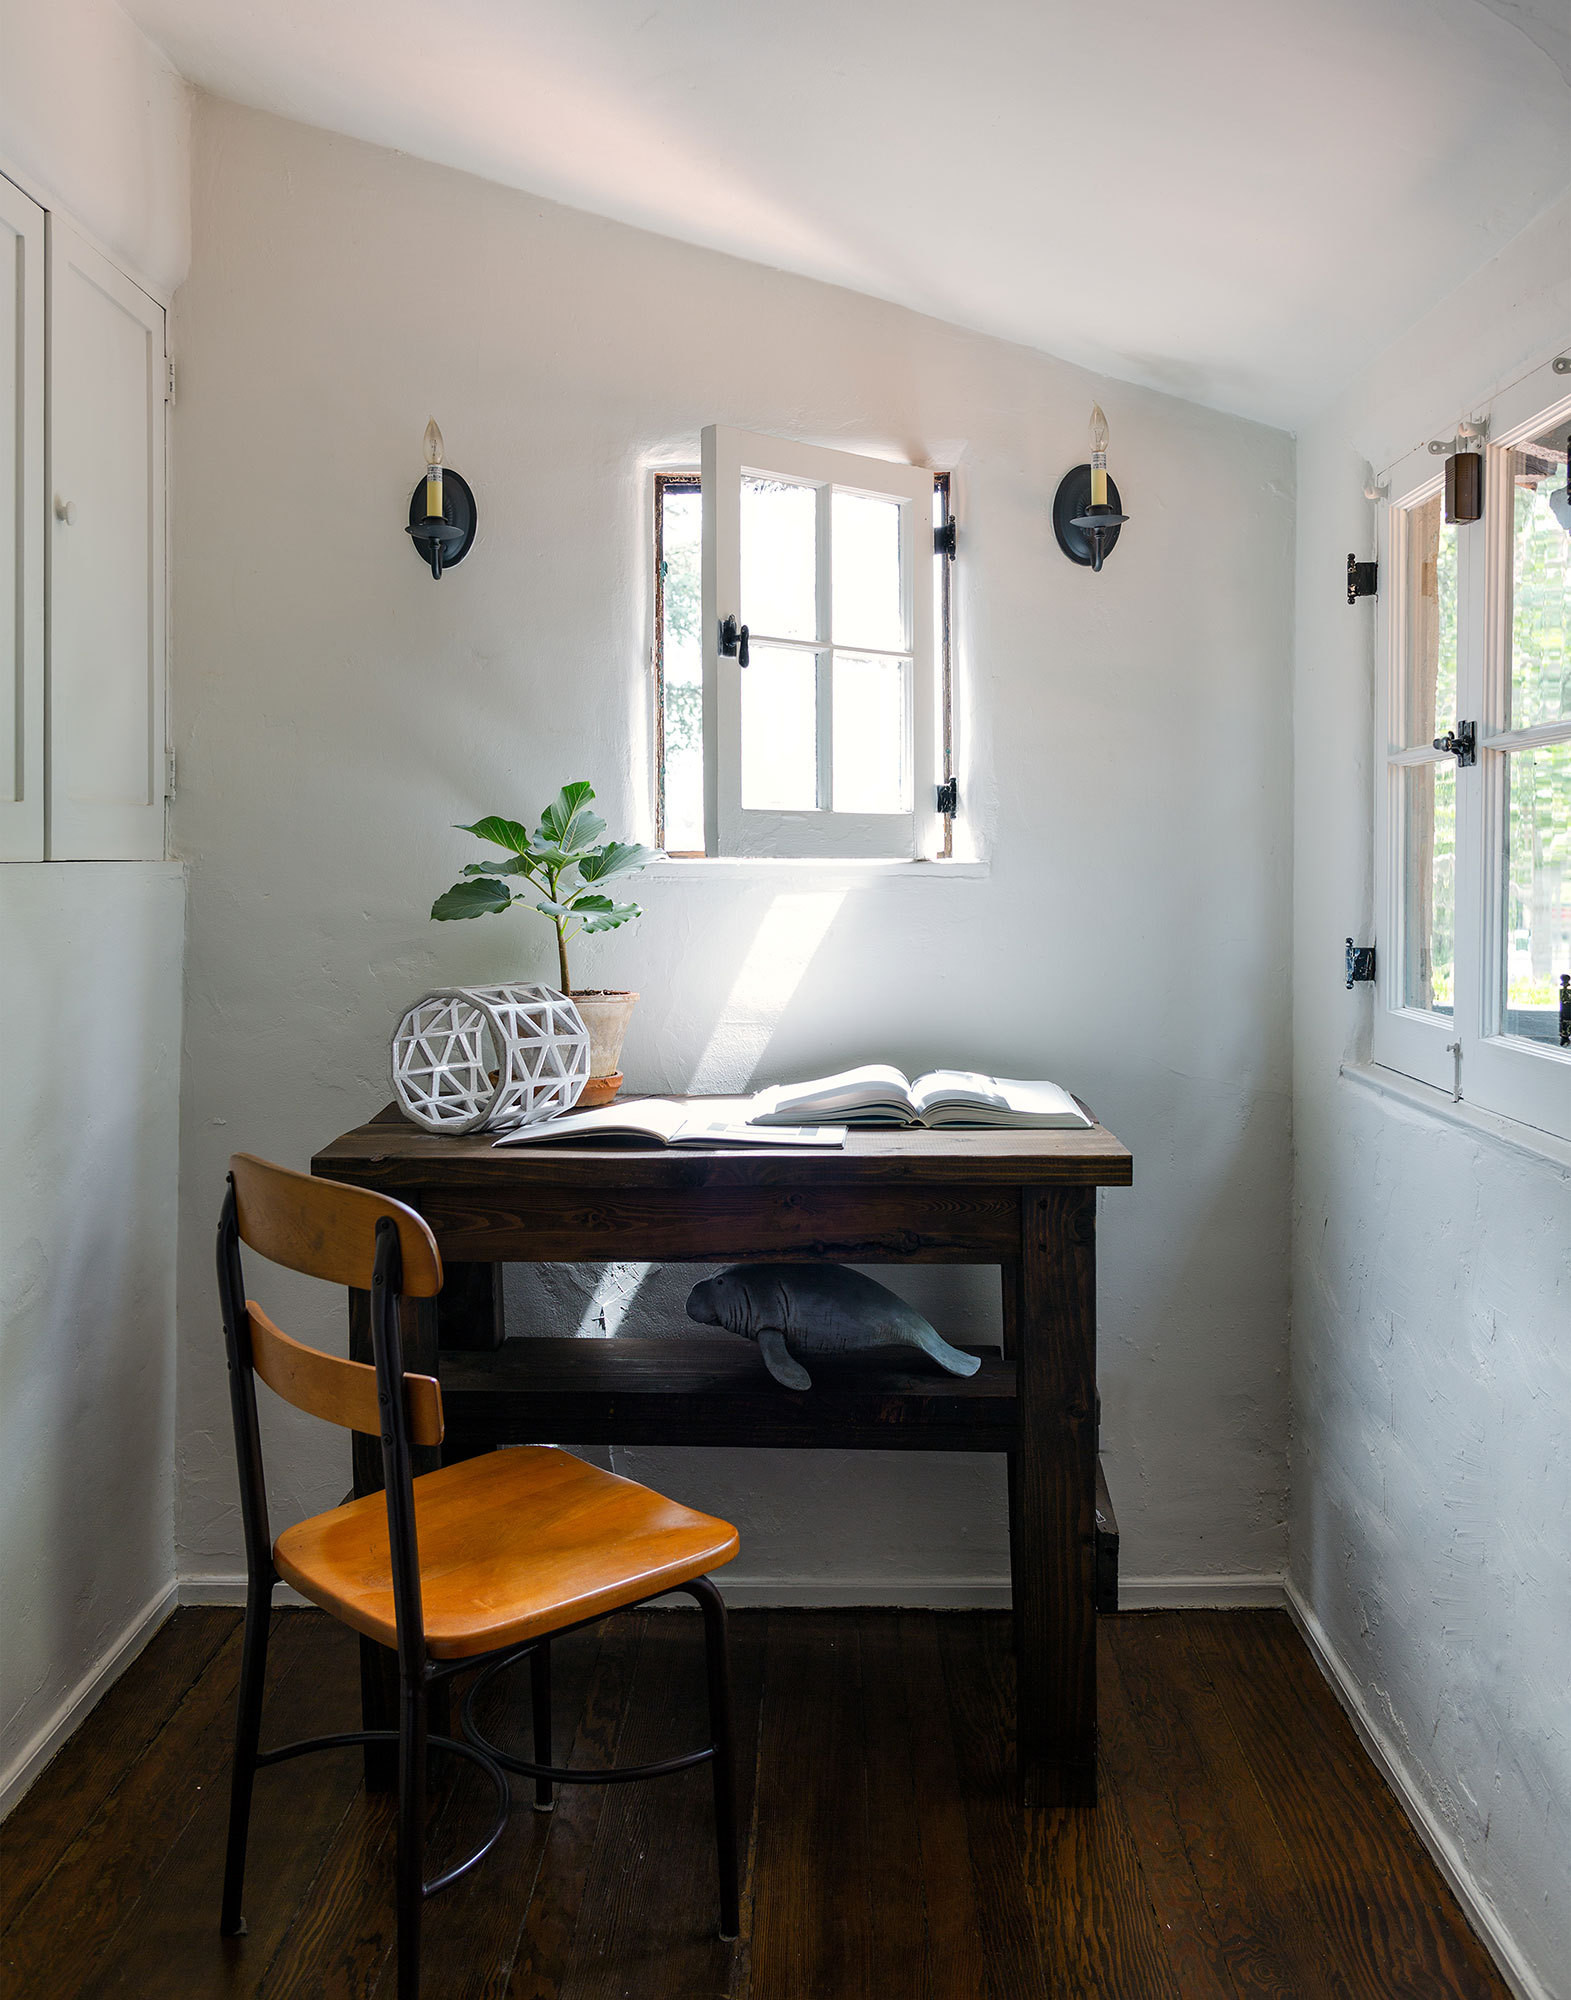 A cozy alcove serves as an impromptu workspace.